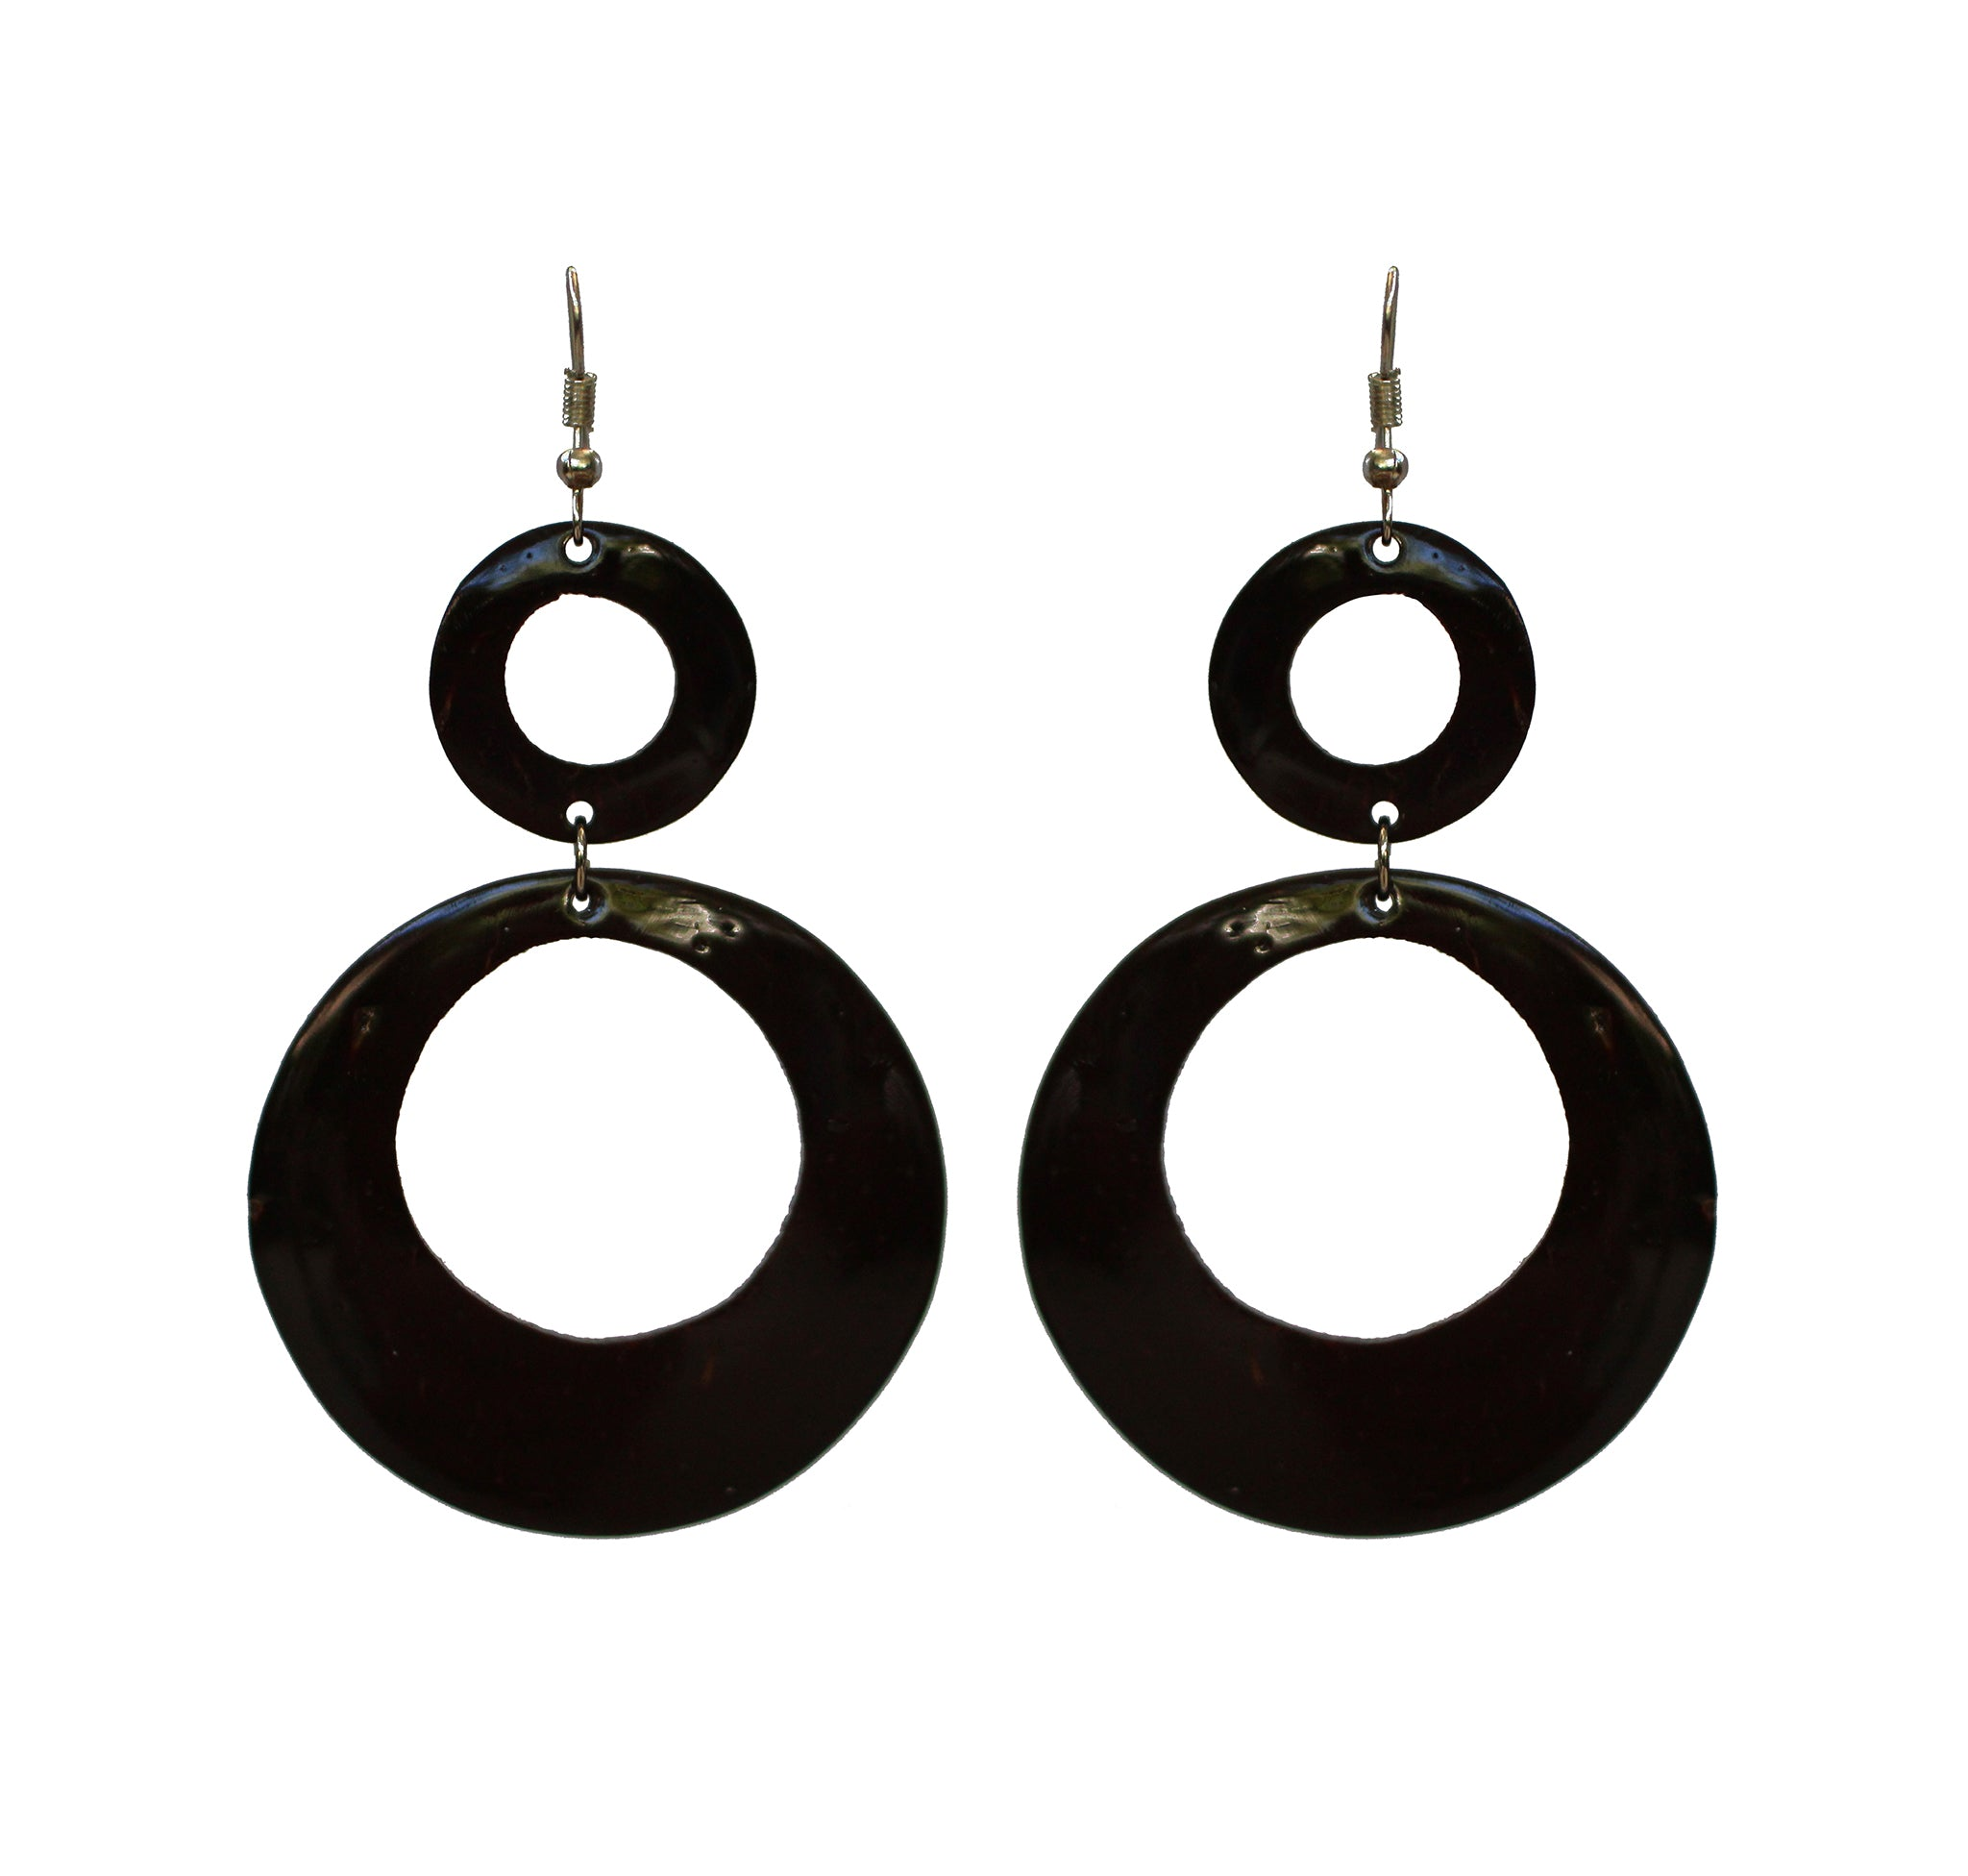 Coconut Earrings - Double Tier Circle